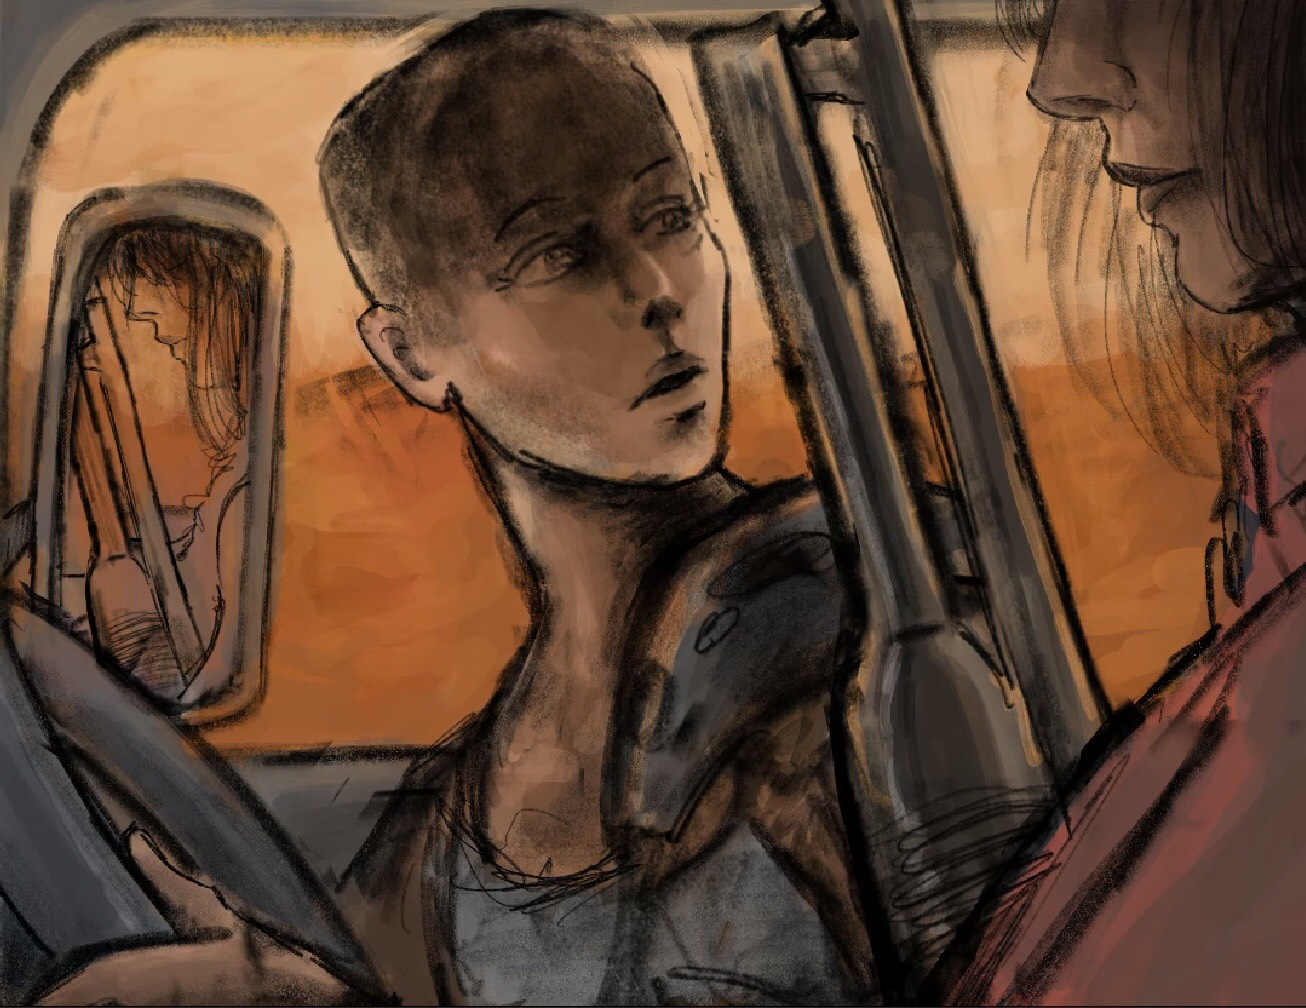 Sketch of  Furiosa   See the full image  here